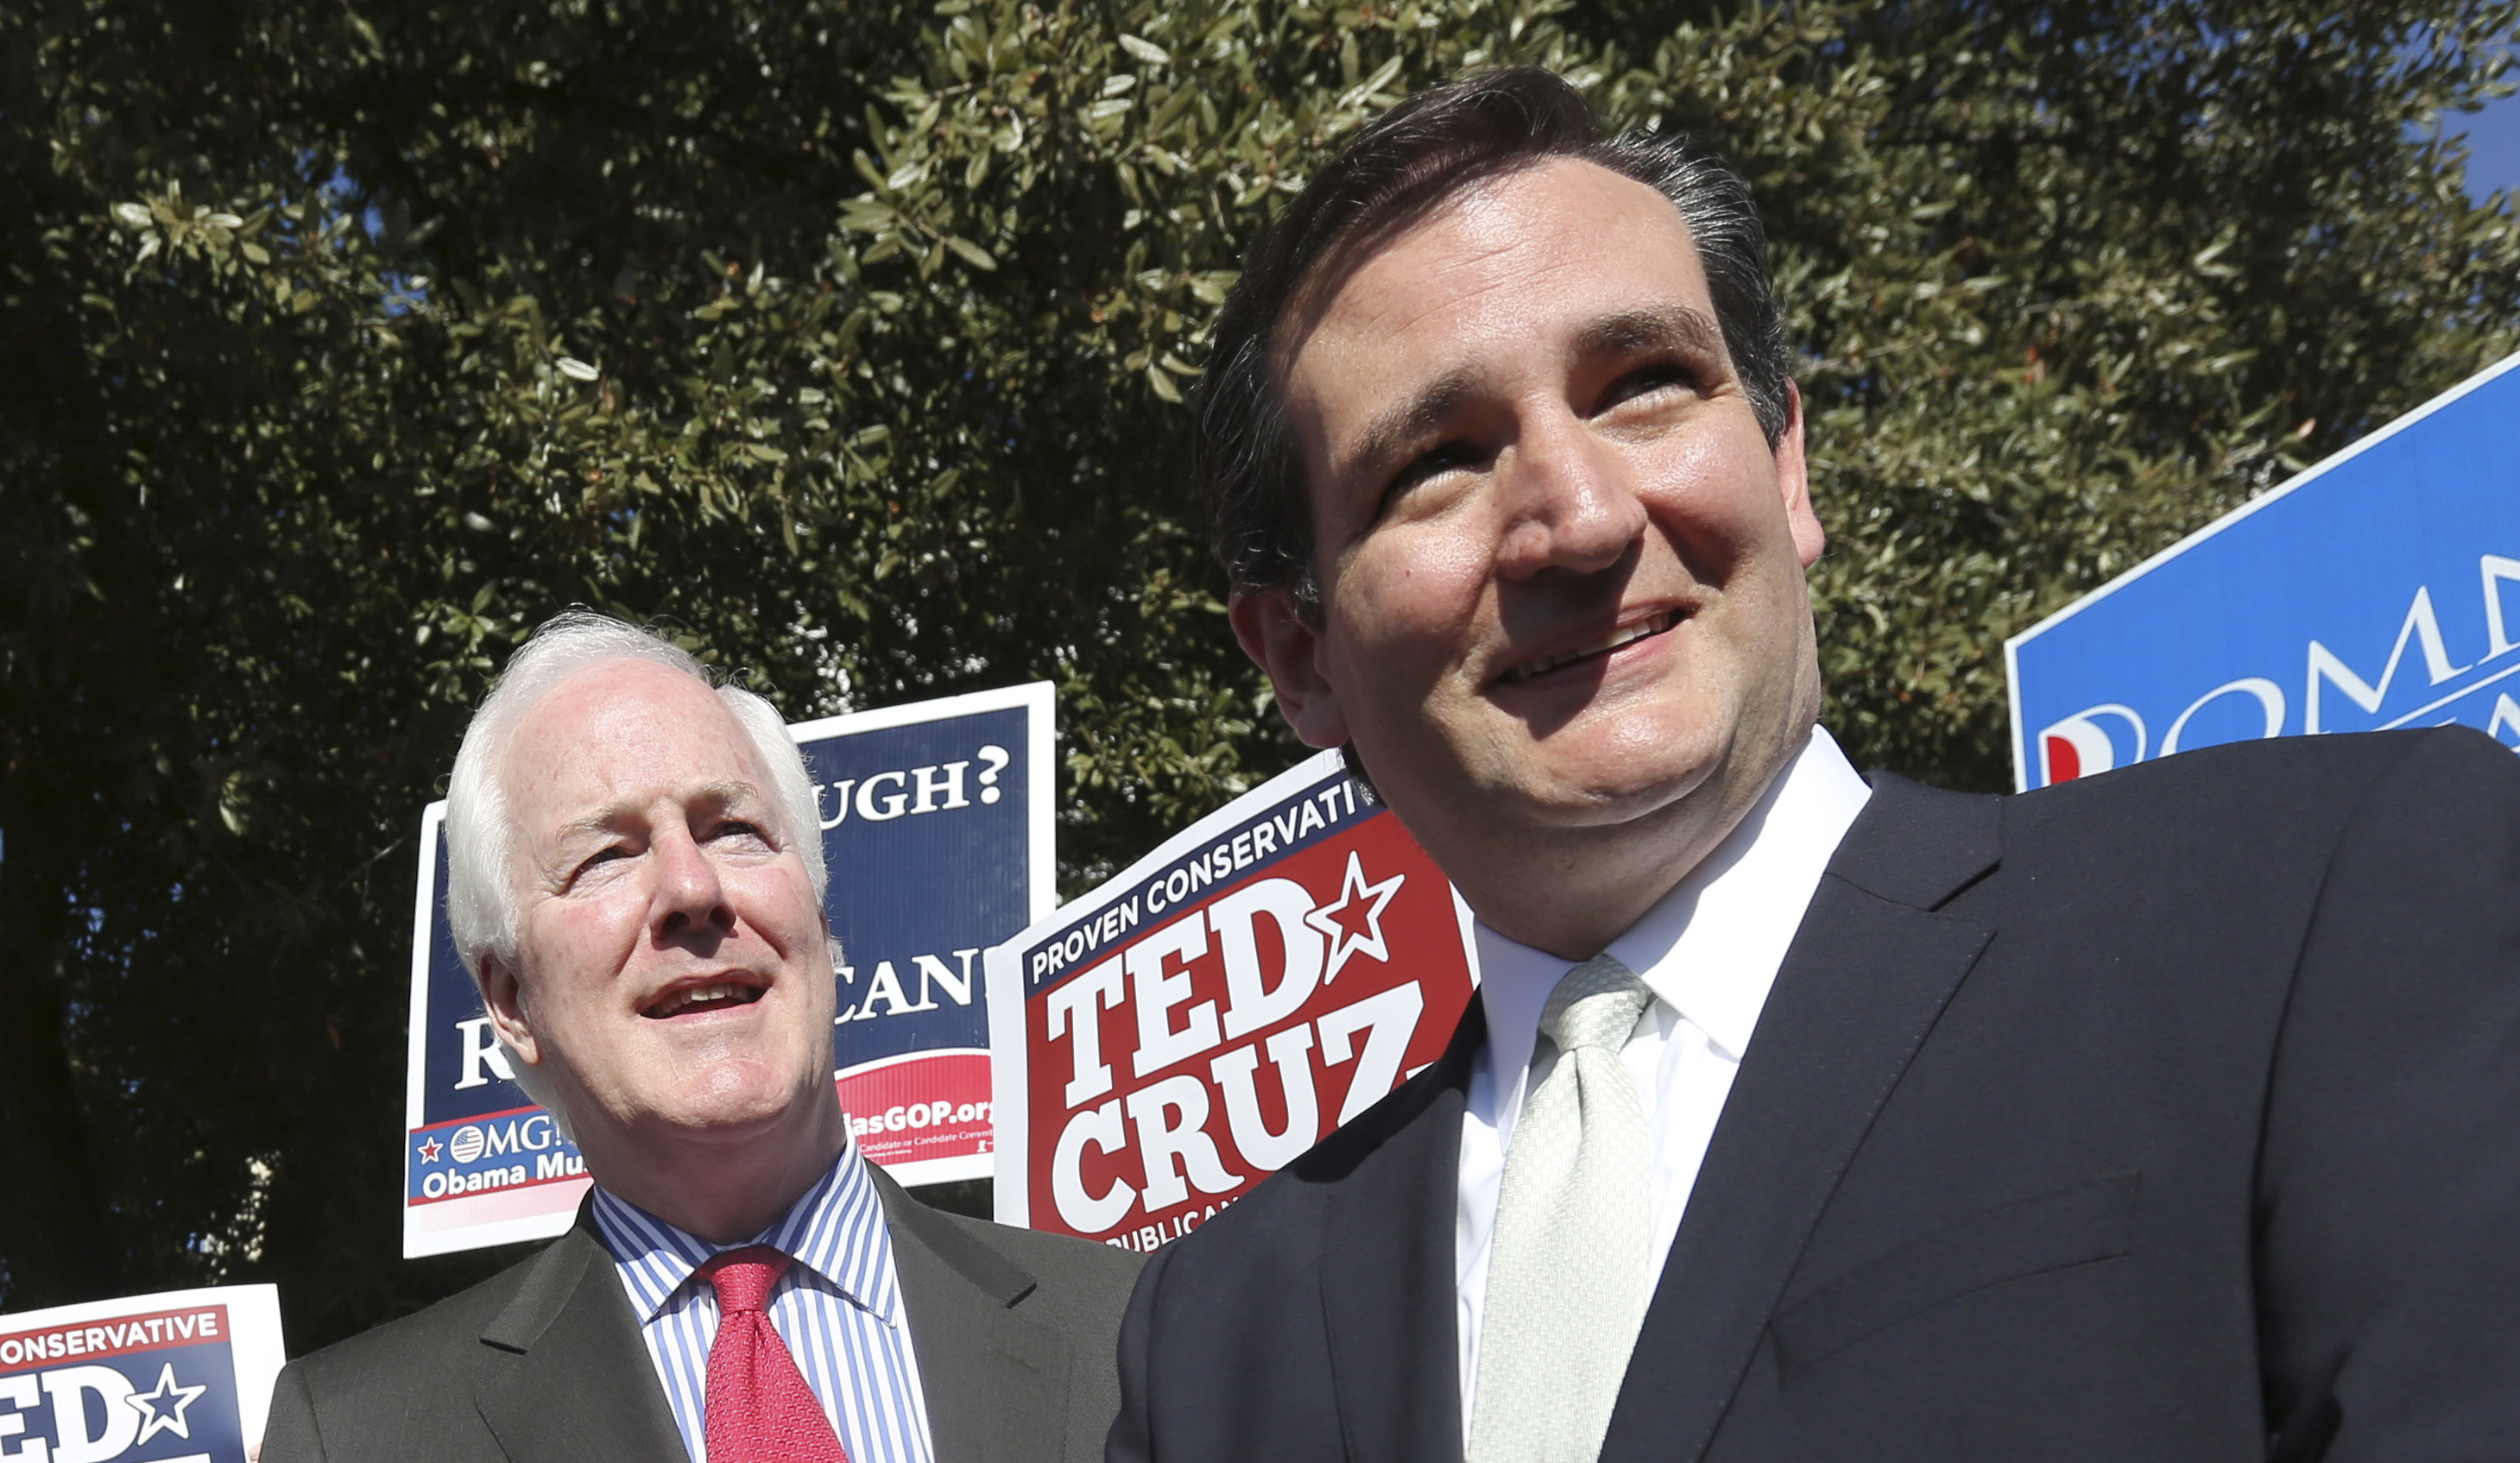 Then-Senate candidate Ted Cruz (R-TX), right, and Sen. John Cornyn (R-TX) listen to a question from reporters outside a polling station in Dallas.